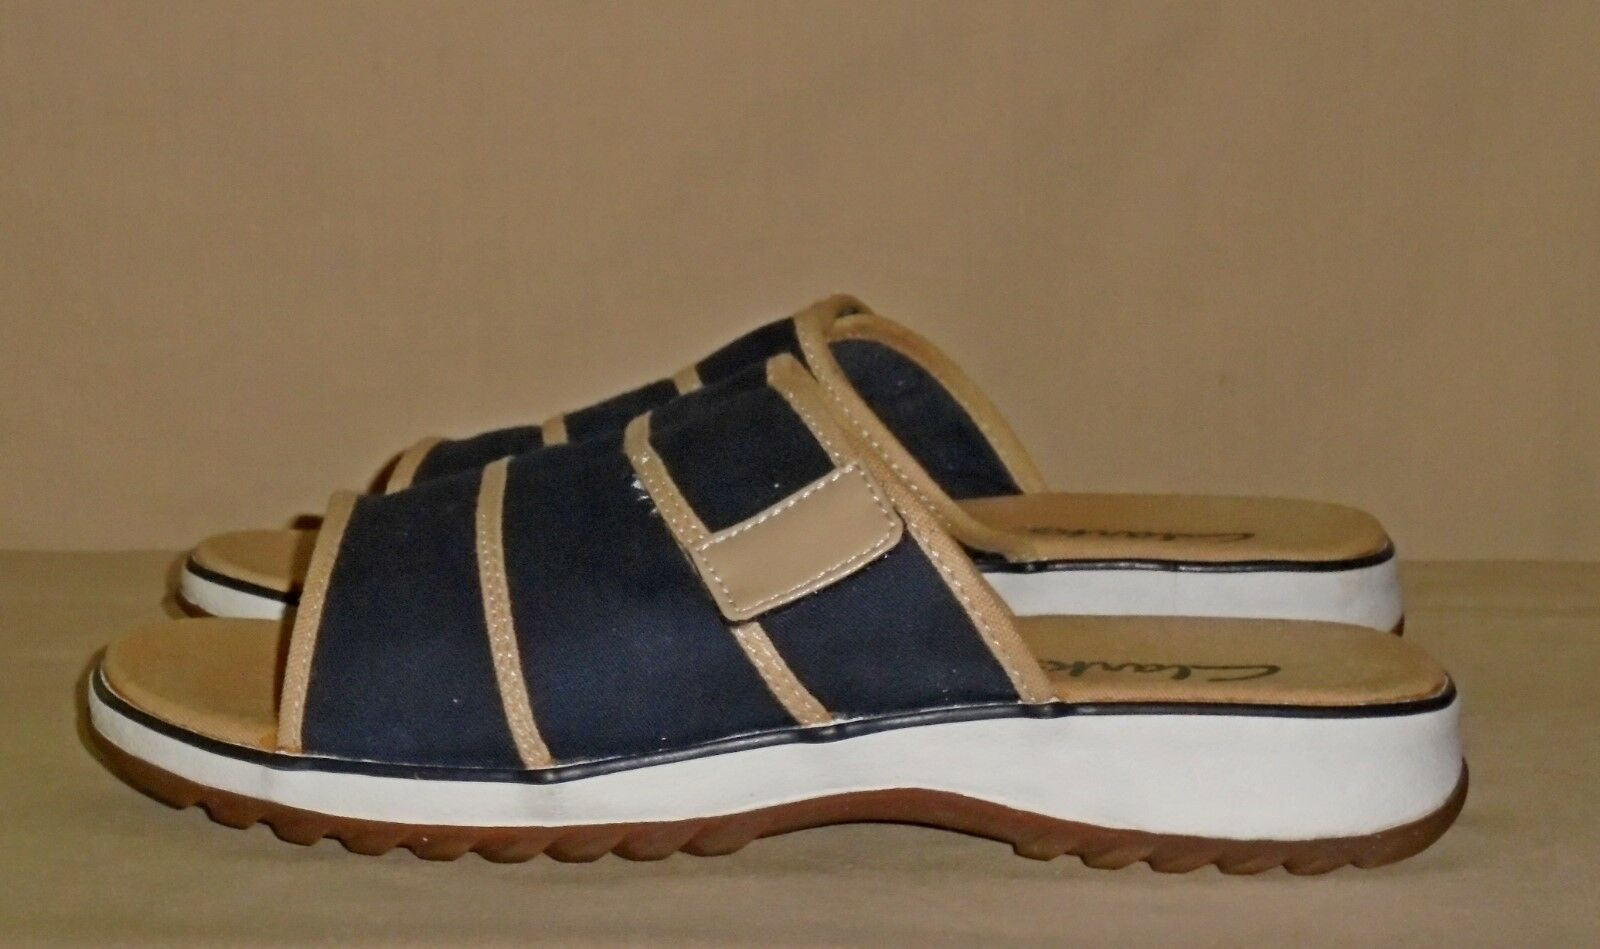 Women's Brown 9 Navy Canvas CLARKS Sandals Size 9 Brown W GREAT Condition efb9ce